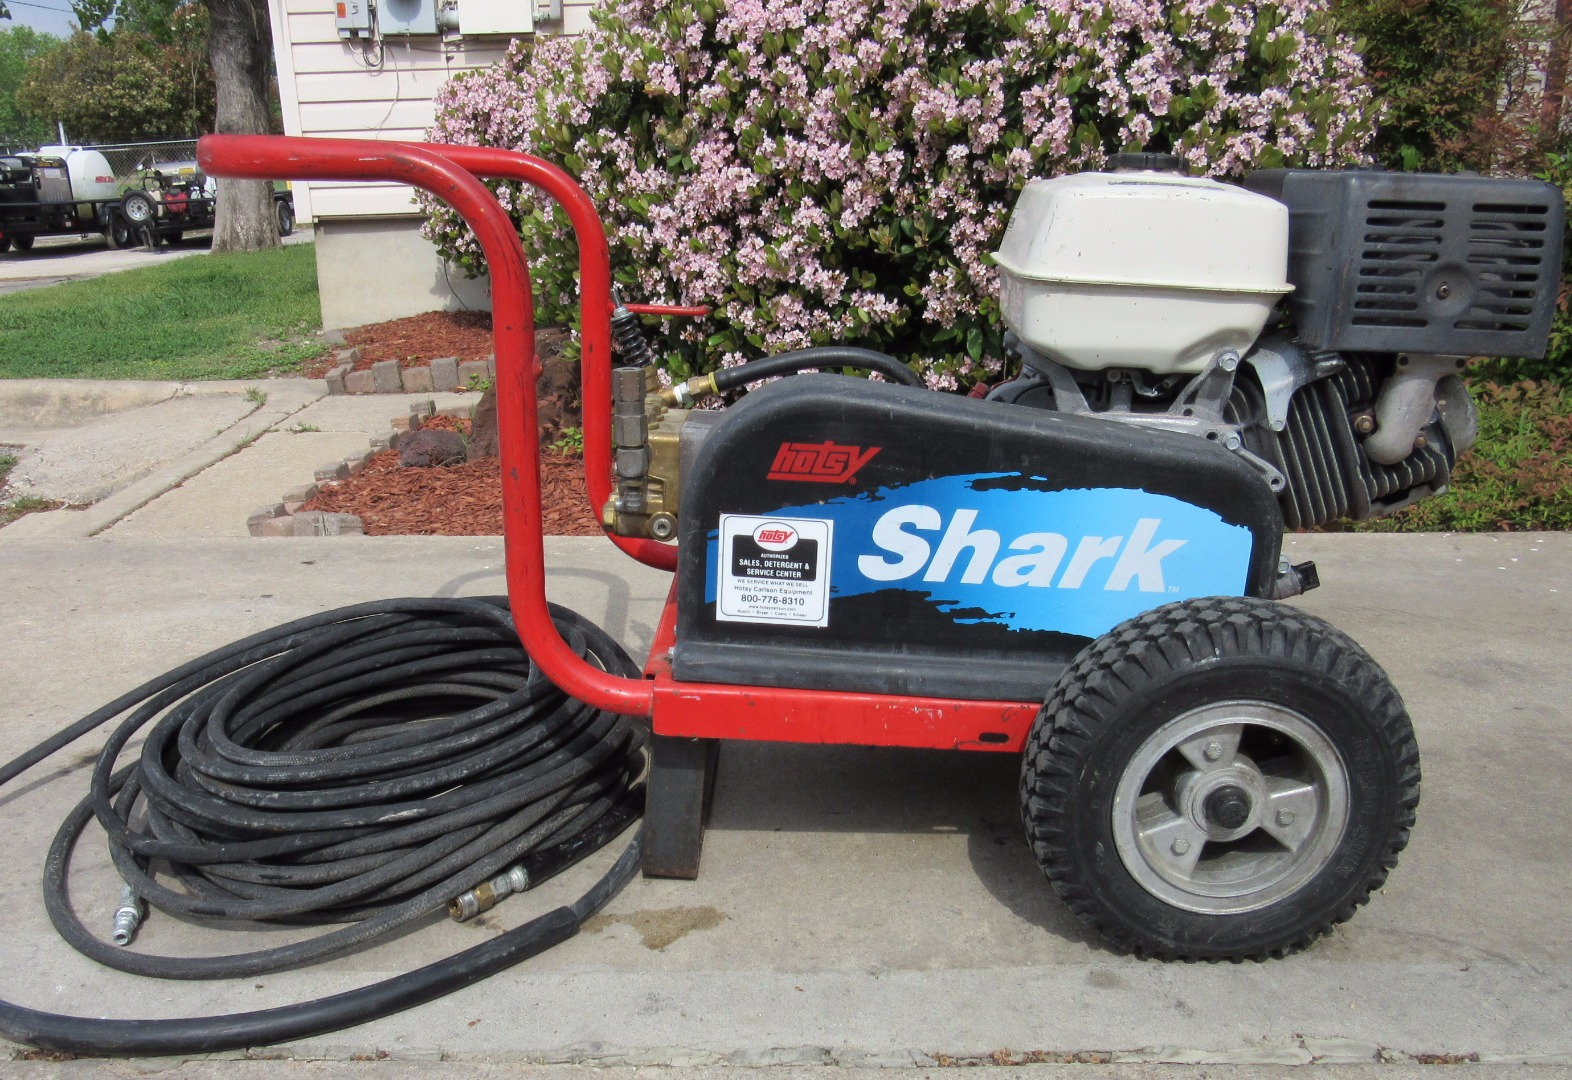 used hotsy shark 445 cold water gas 4gpm 2500psi pressure washer 1430755760263 used hotsy shark 445 cold water gas 4gpm @ 2500psi pressure washer hotsy pressure washer wiring diagram at edmiracle.co